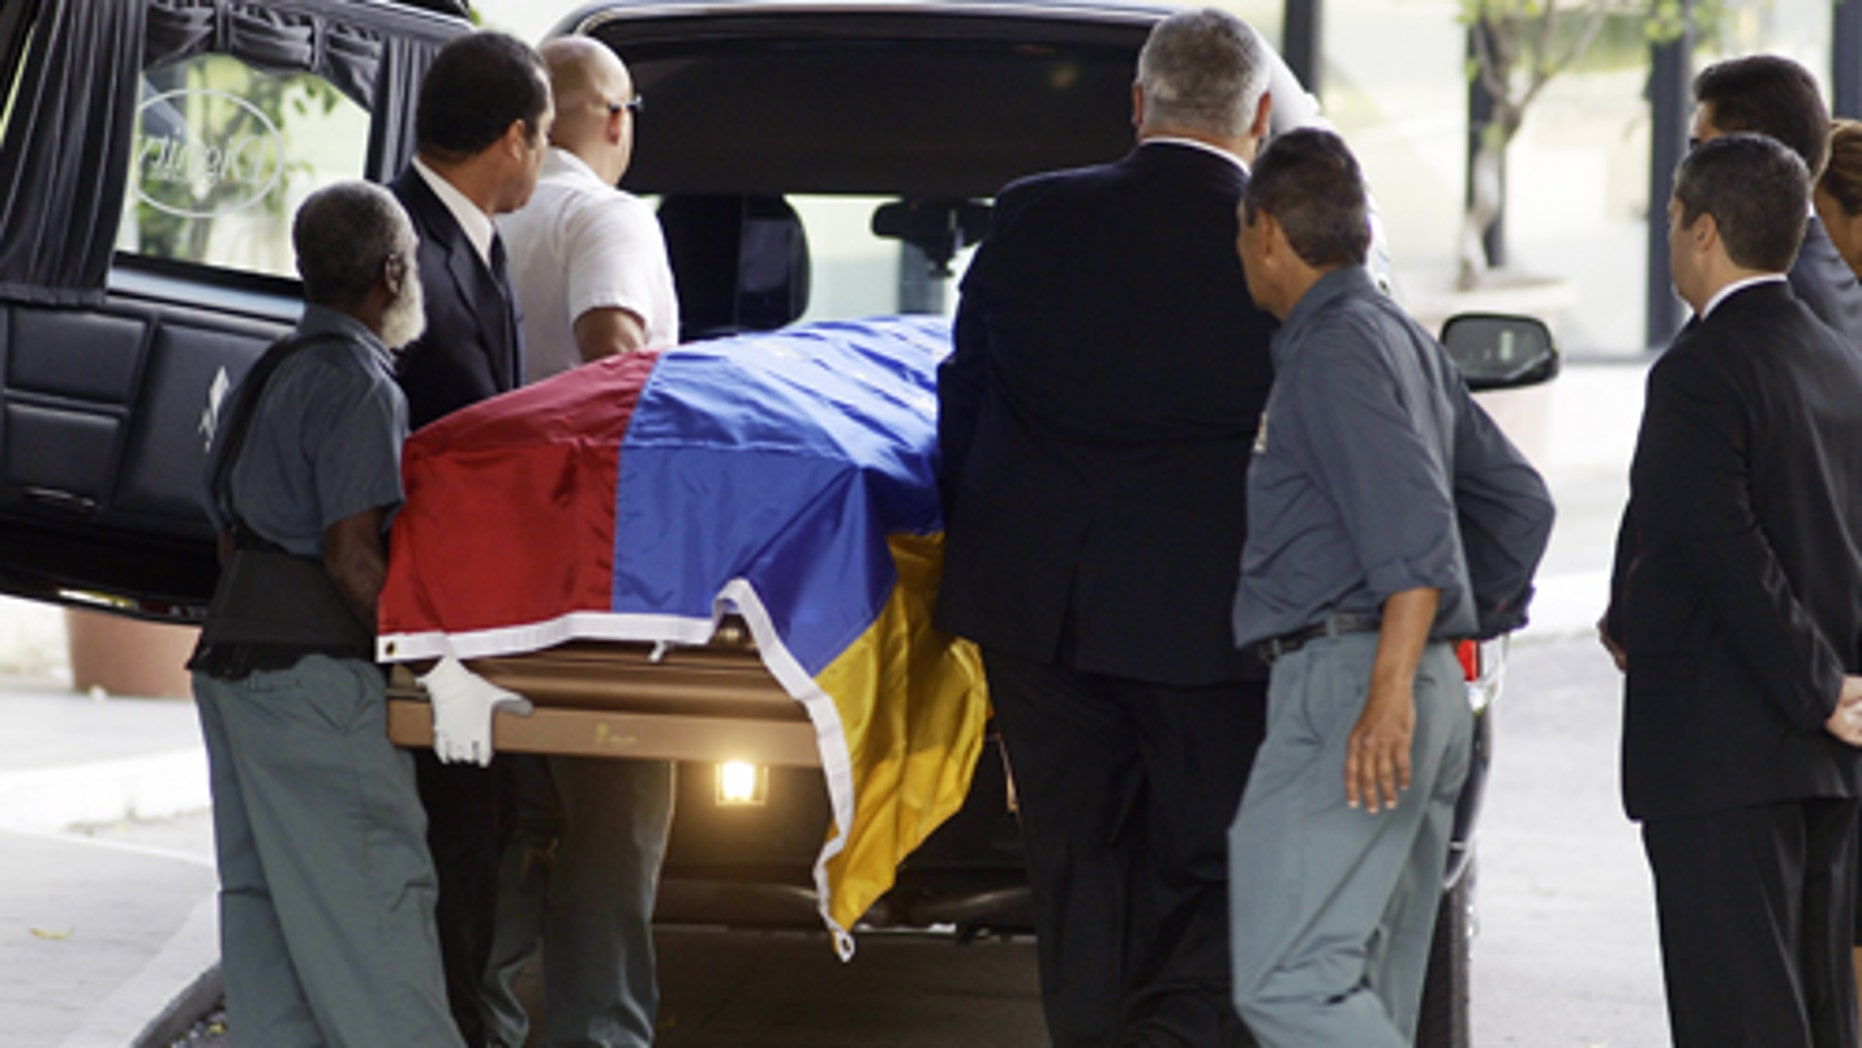 Workers carry the body of former Venezuelan President Carlos Andres Perez from the mausoleum to the hearse in Miami. Perez is finally going home, more than nine months after he died living in exile in Miami.